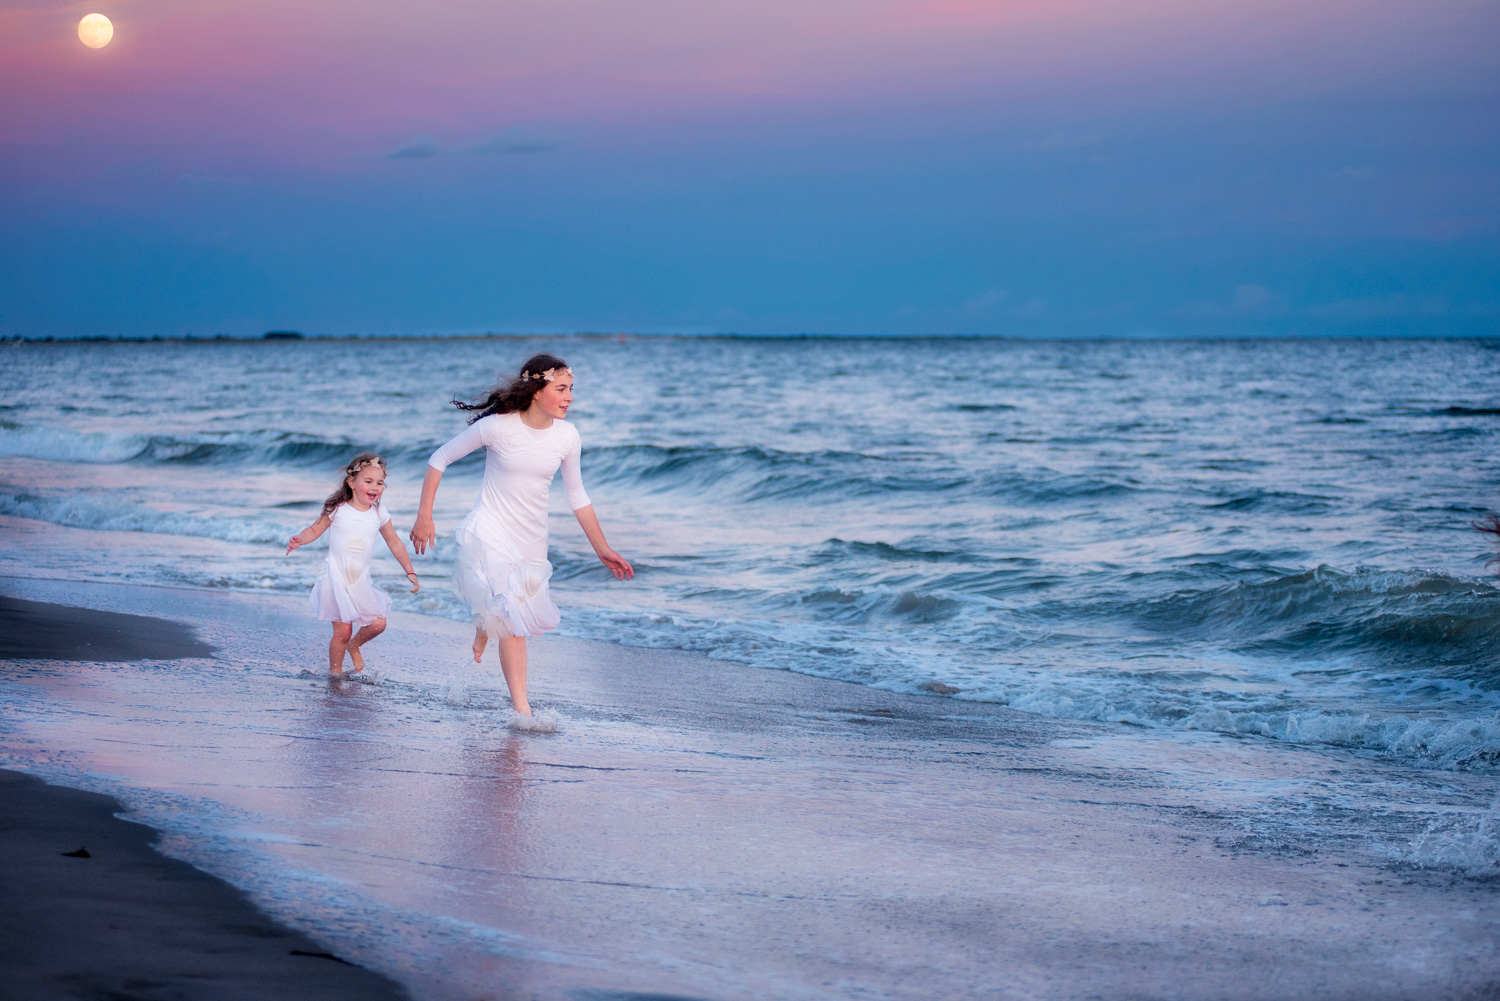 Fun and relaxed sunset photography session at Coney Island Beach in Brooklyn NY with sisters running in the waves taken by Picadilly Studios